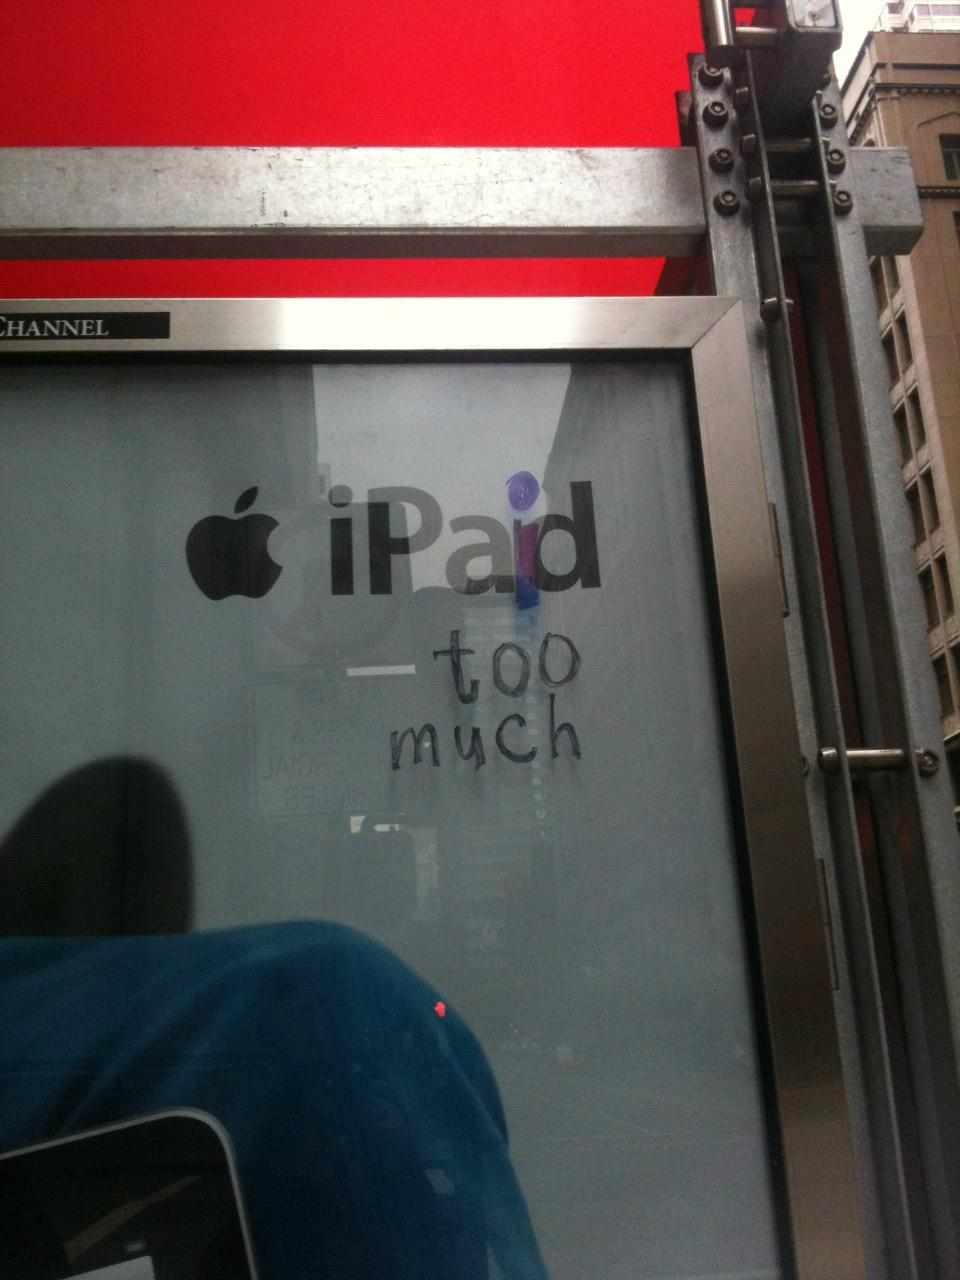 iPad explained